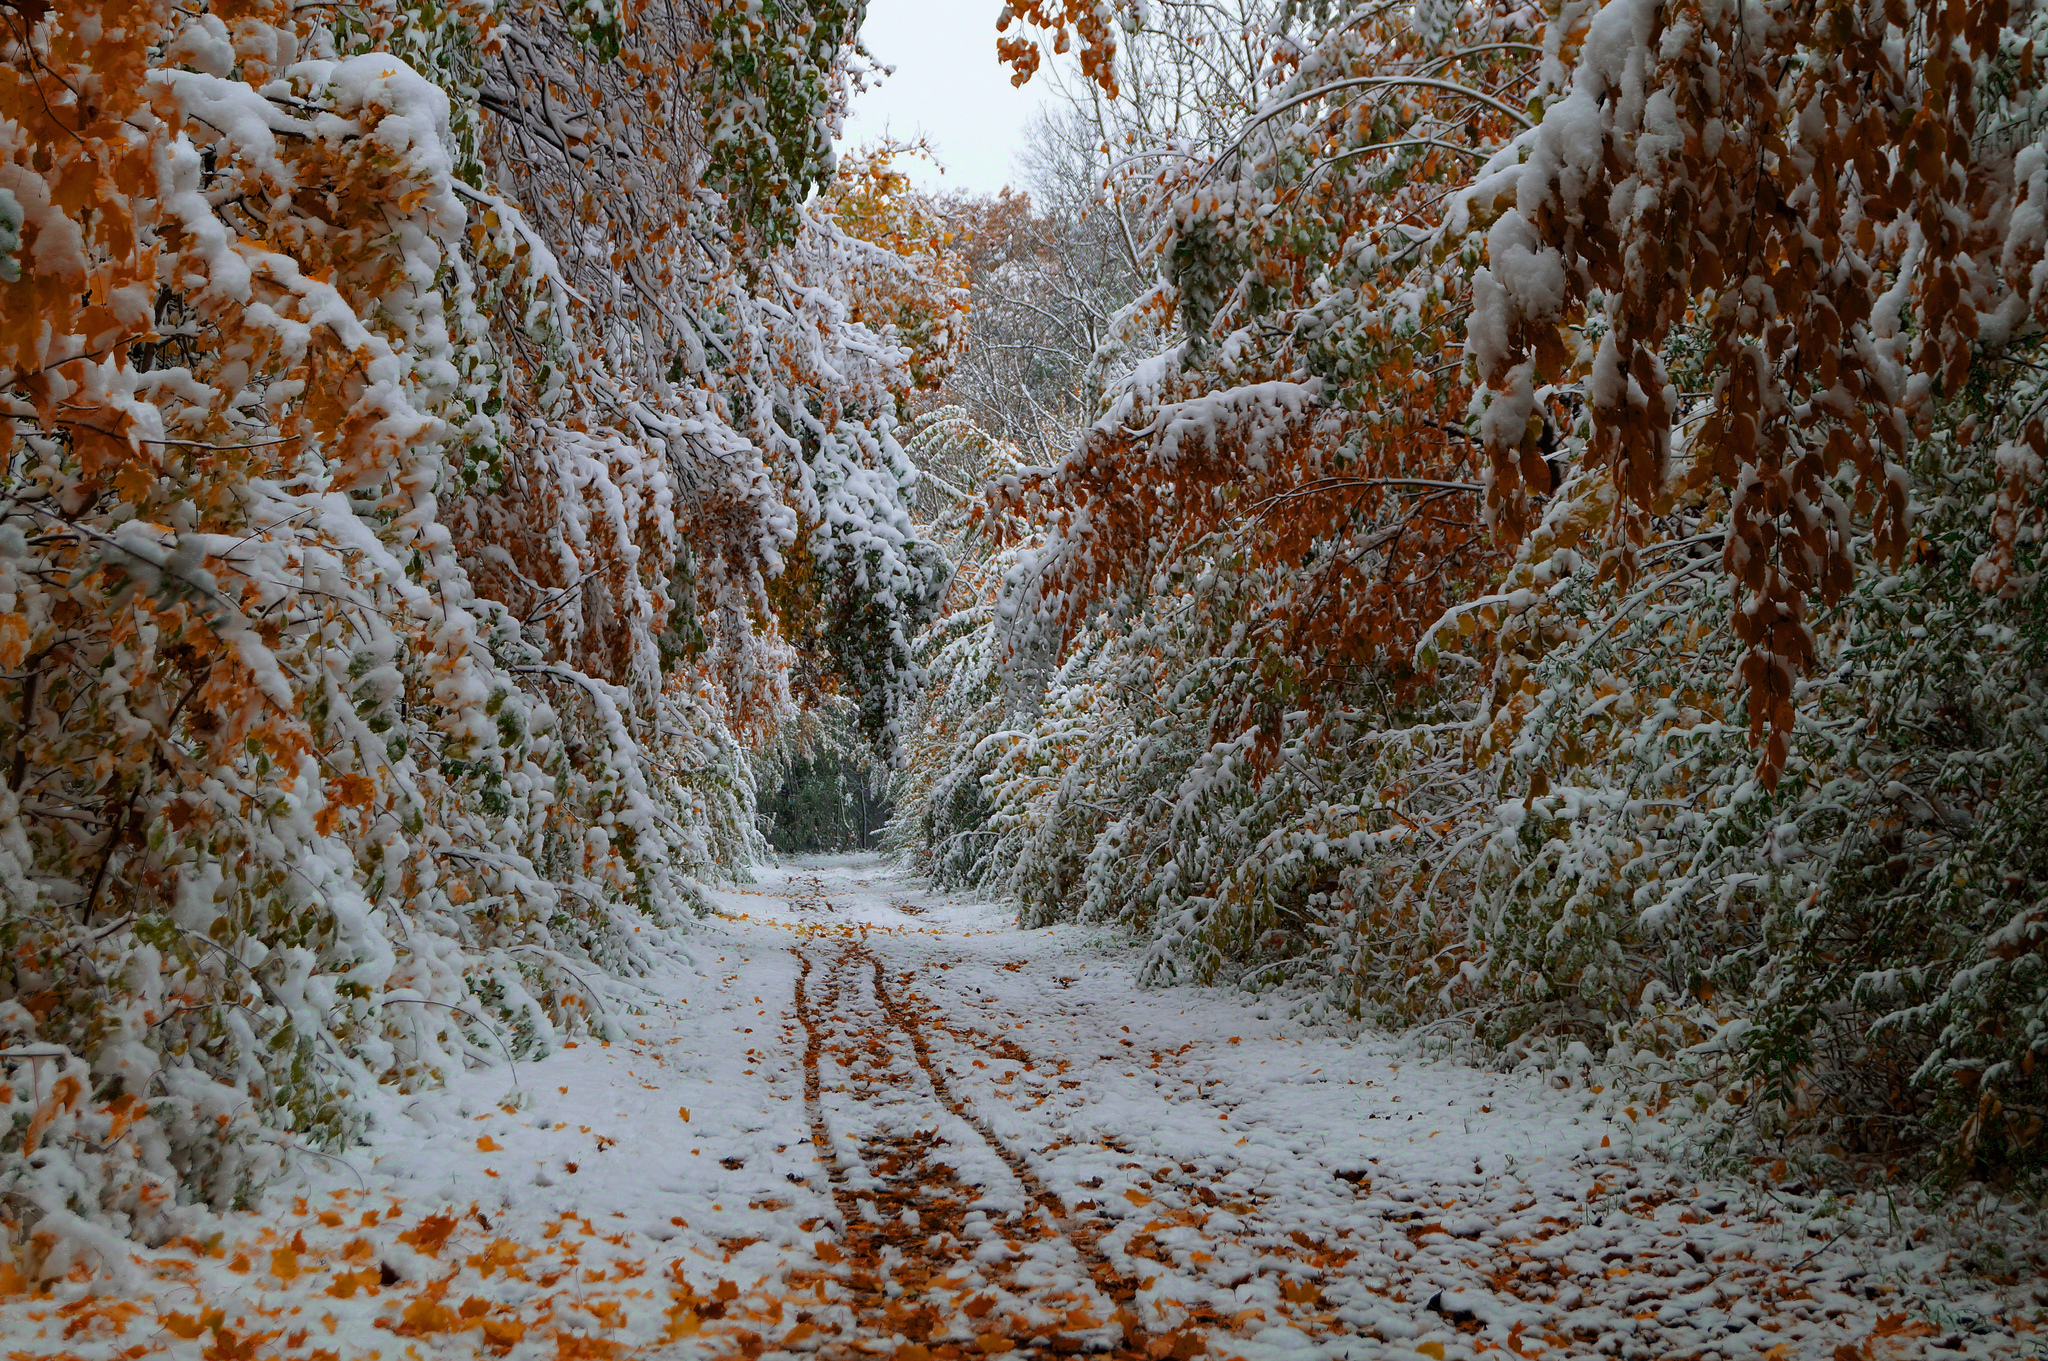 Trees leaves fall october the first snow the road wallpaper background 2048x1361